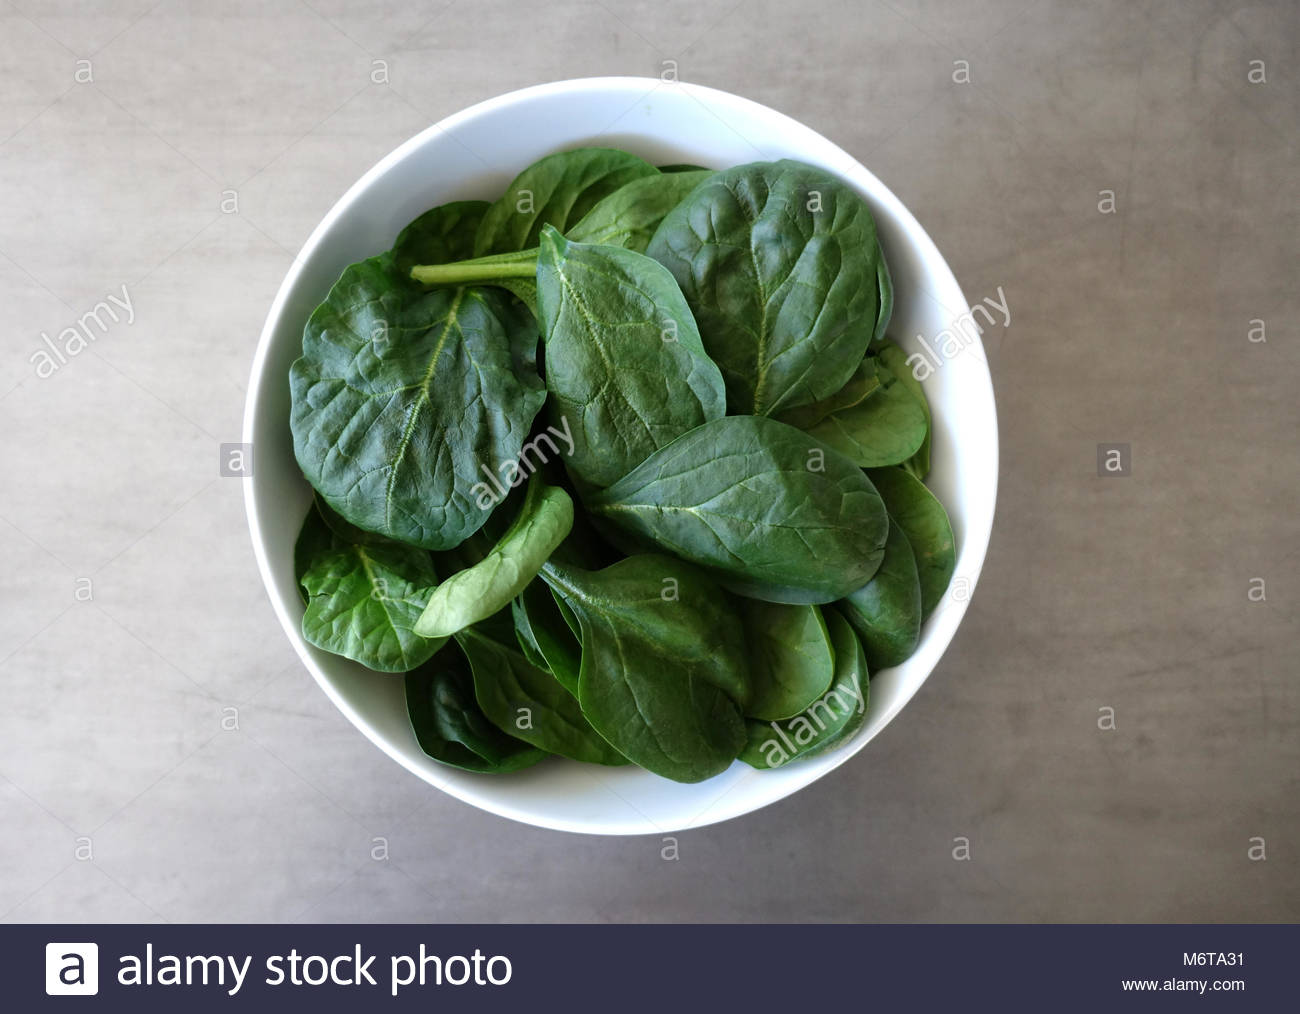 Bowl of Fresh Baby Spinach Leaves against a Gray Background Stock Photo